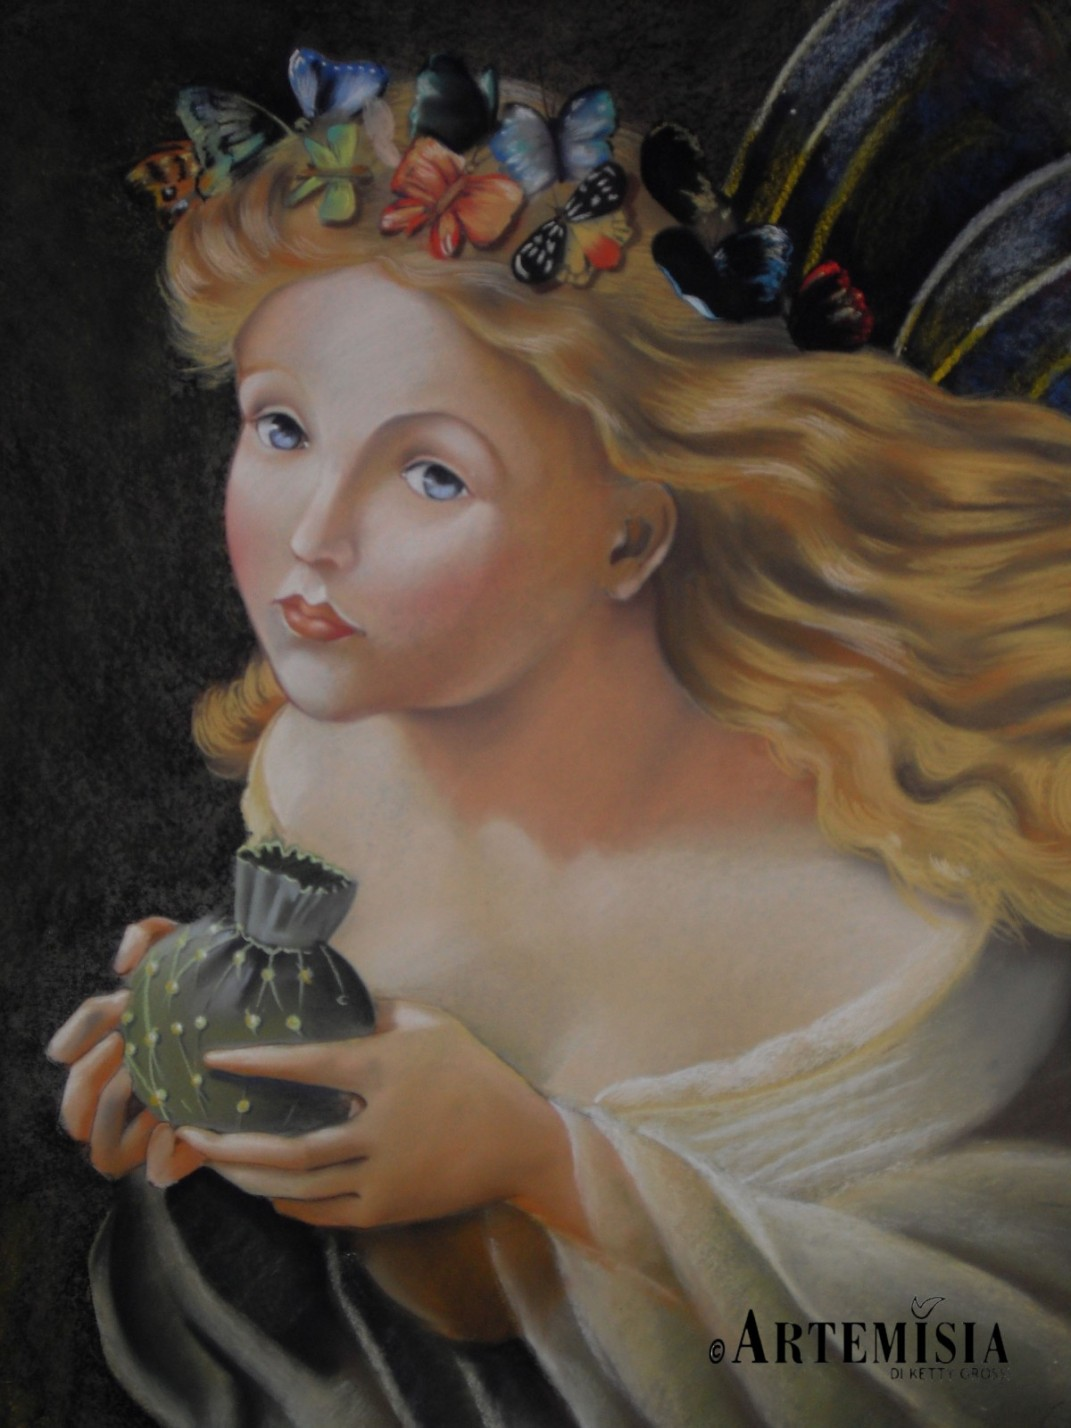 Copy from Andersen Sophie. 'Take the Fair Face of Woman, and Gently Suspending, With Butterflies, Flowers, and Jewels Attending, Thus Your Fairy is Made of Most Beautiful Things - purportedly from a poem by Charles Ede. Chalk on wood 120x150 cm